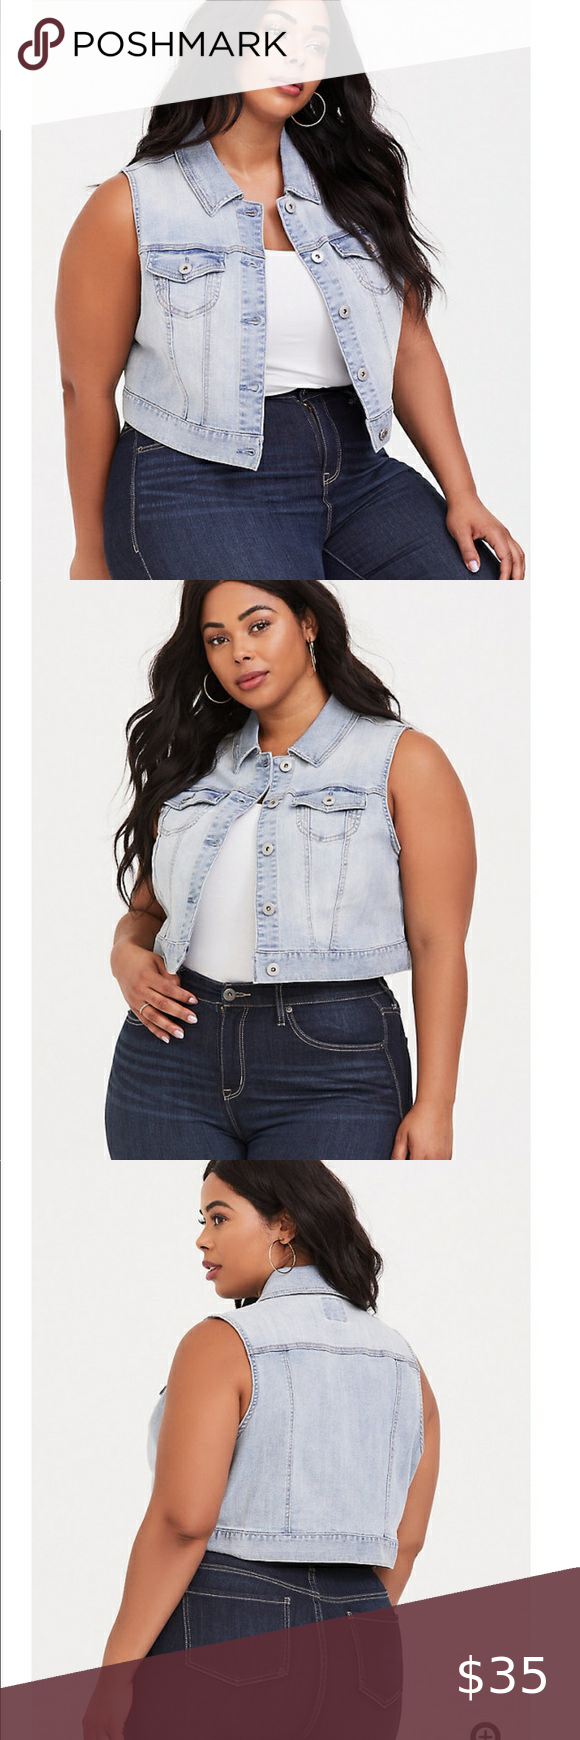 Nwt Torrid Cropped Denim Jacket Versatile And A Yearlong Staple A Cropped Fit And Stretchy Construction Updates In 2020 Cropped Denim Cropped Denim Jacket Denim Vest [ 1740 x 580 Pixel ]